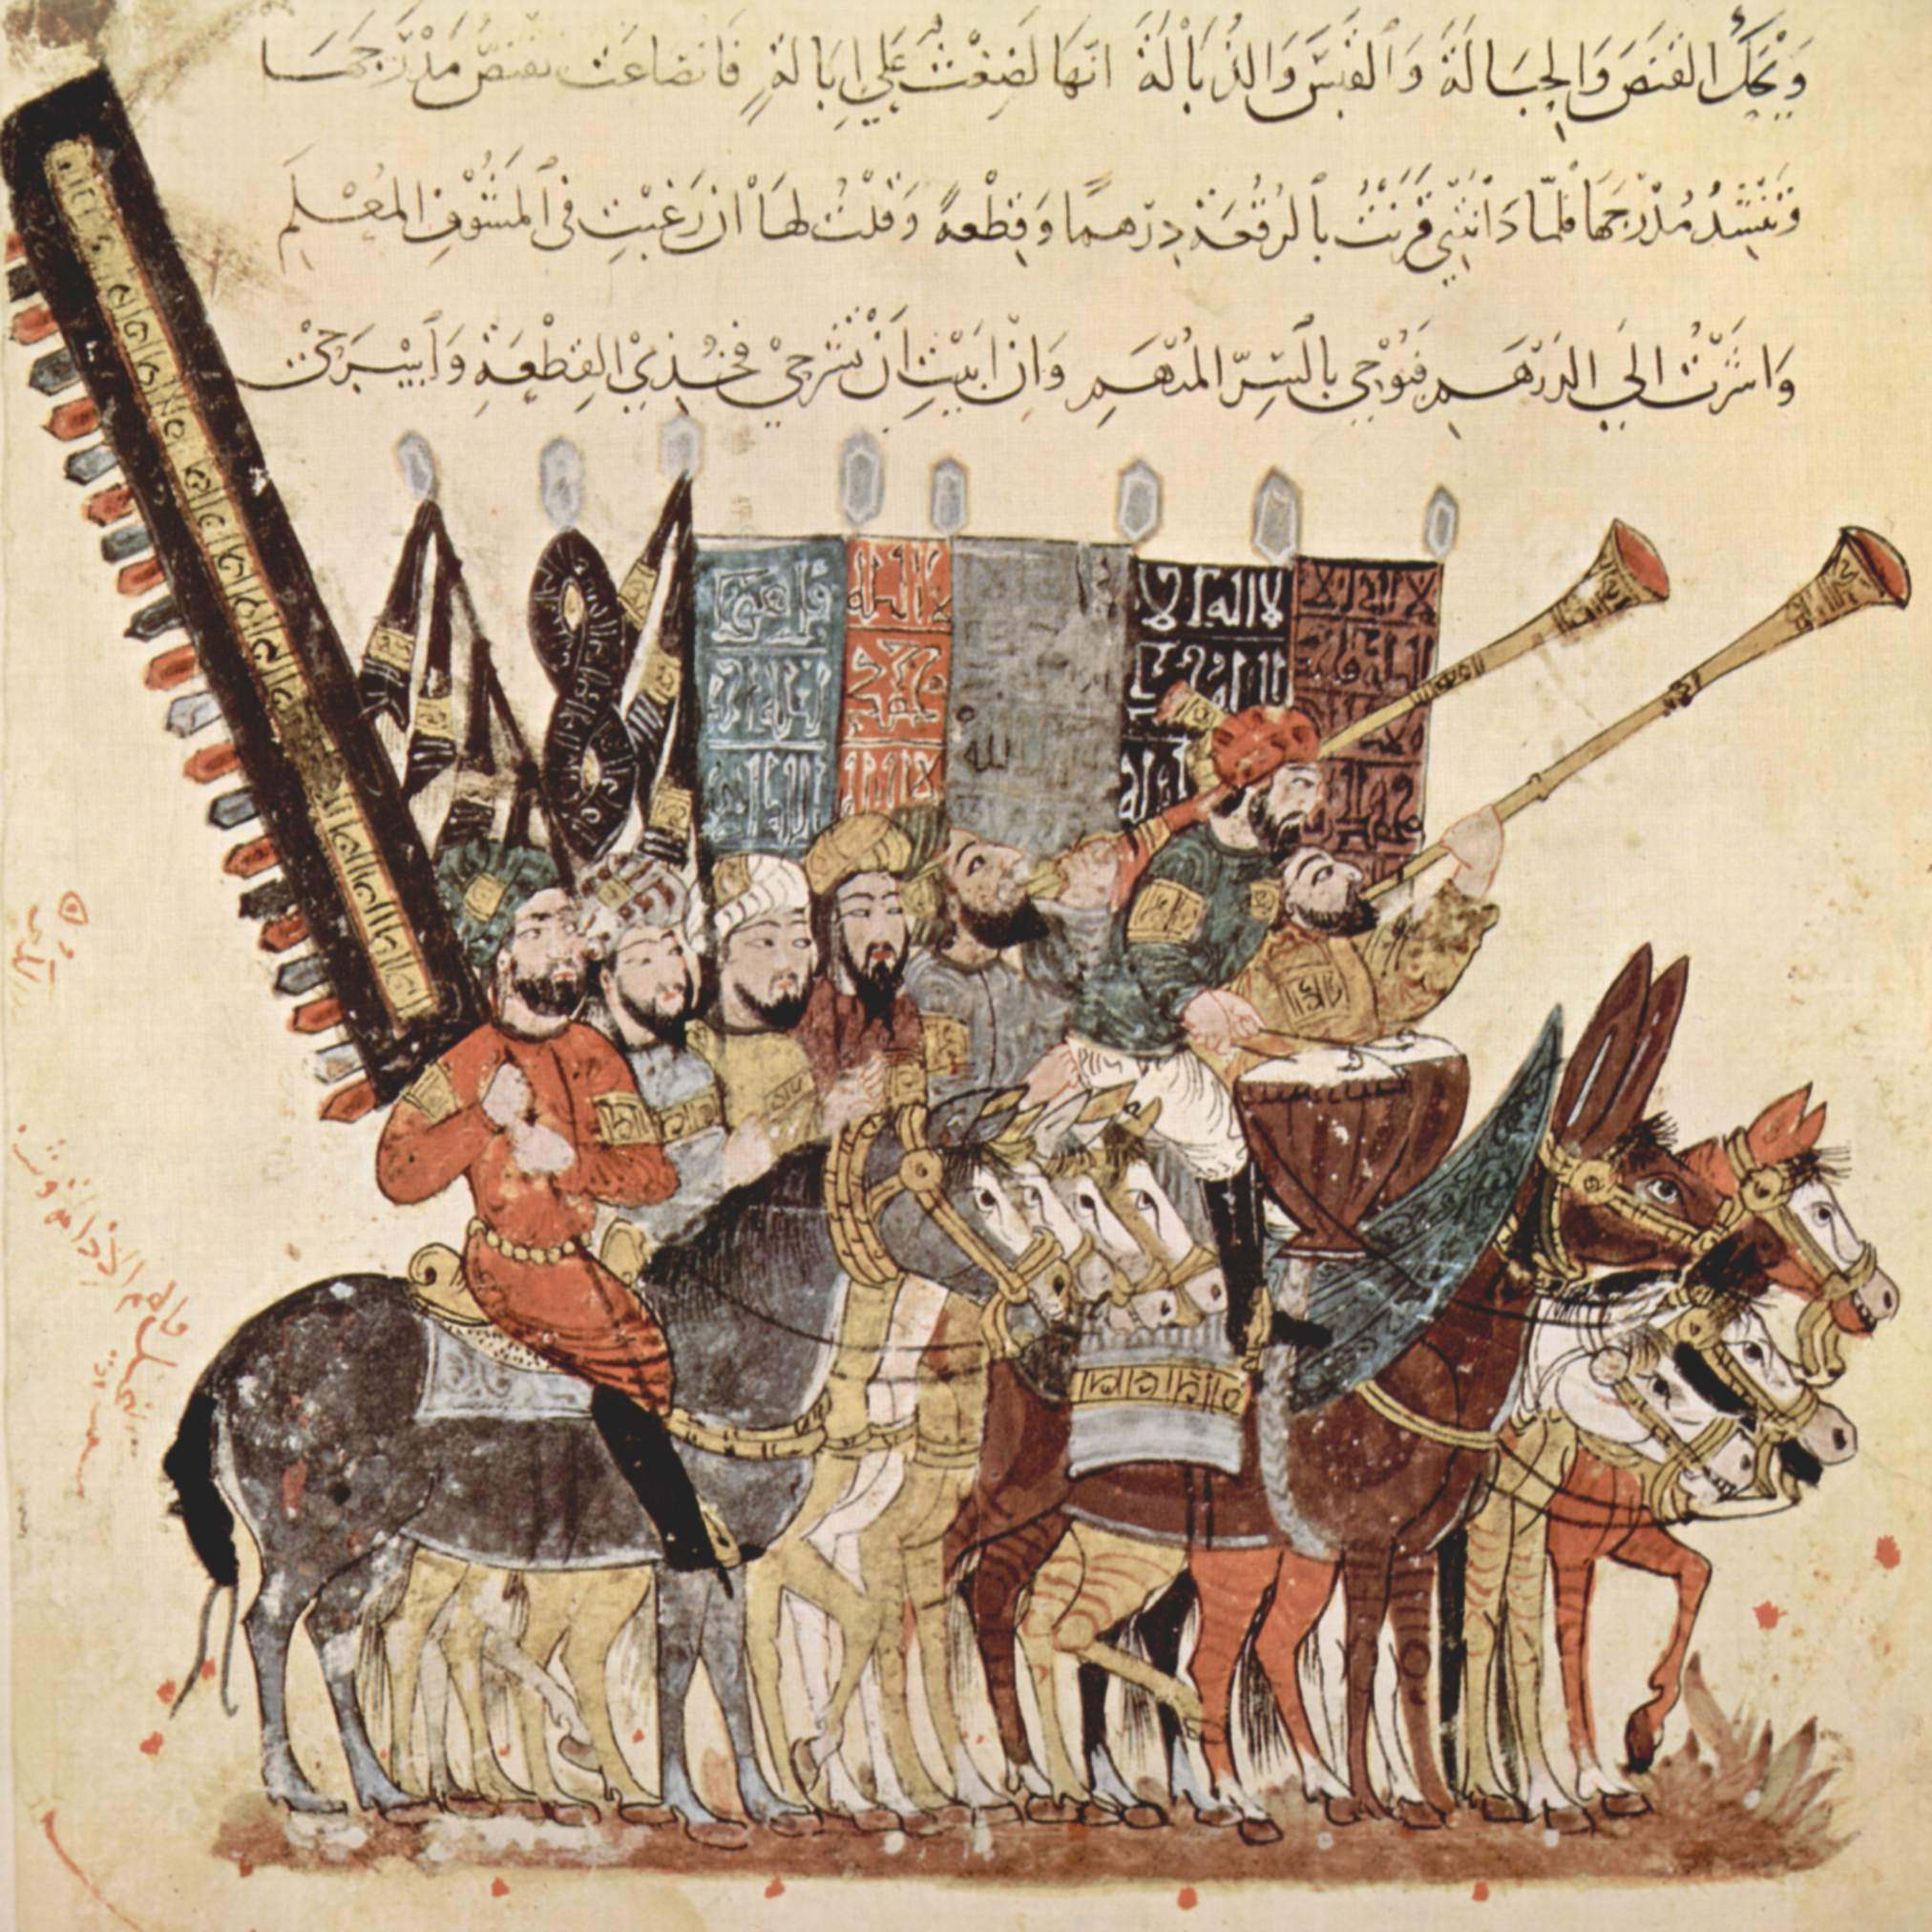 https://upload.wikimedia.org/wikipedia/commons/f/fb/Yahy%C3%A2_ibn_Mahm%C3%BBd_al-W%C3%A2sit%C3%AE_006.jpg